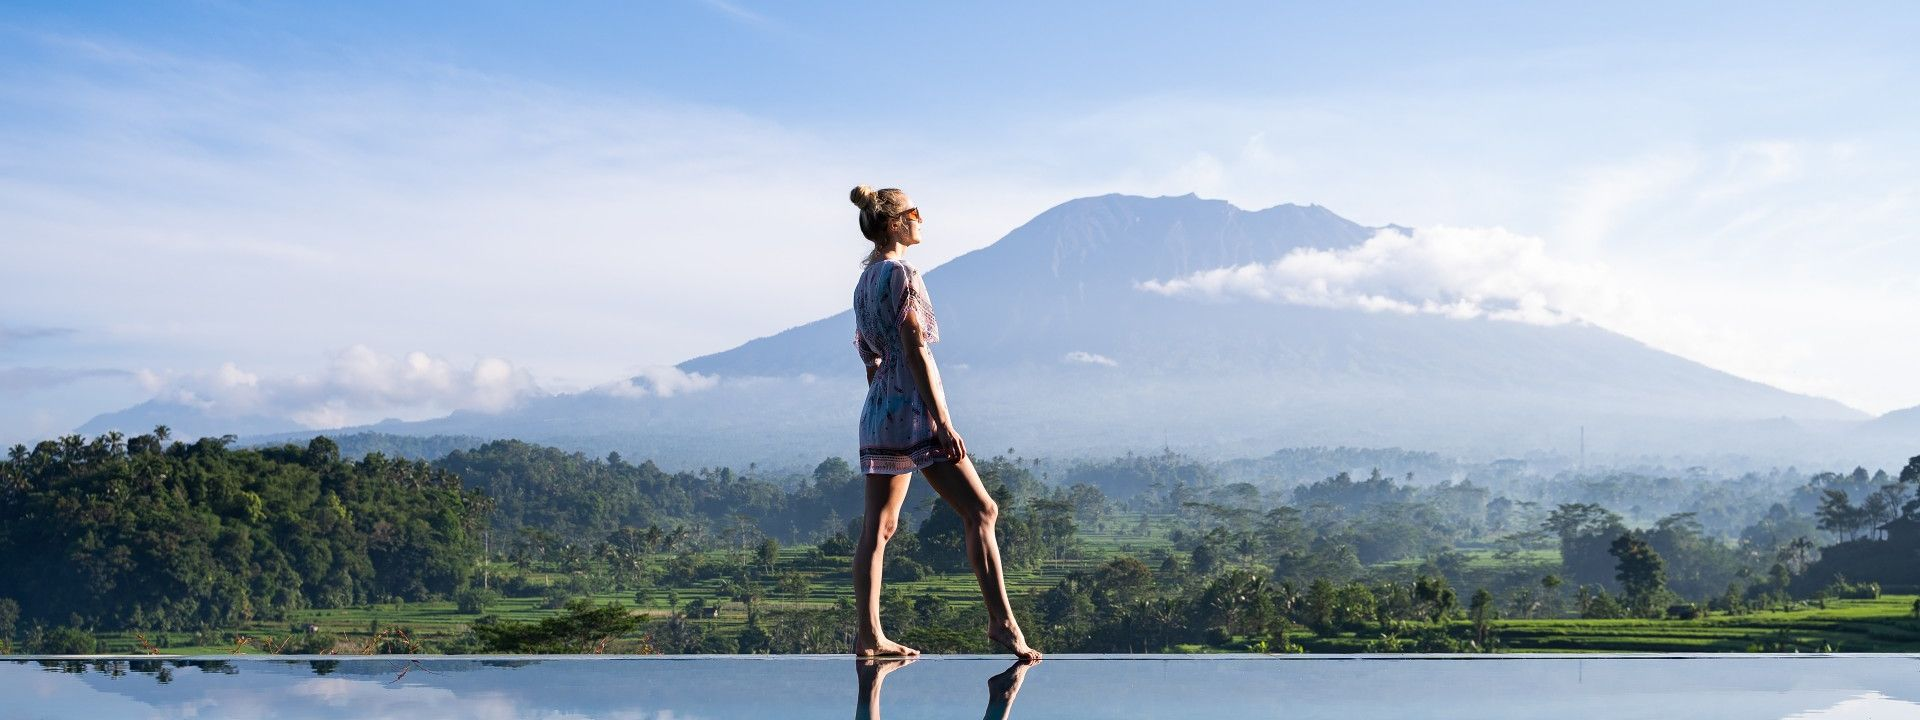 Woman on the pool in front of volcano